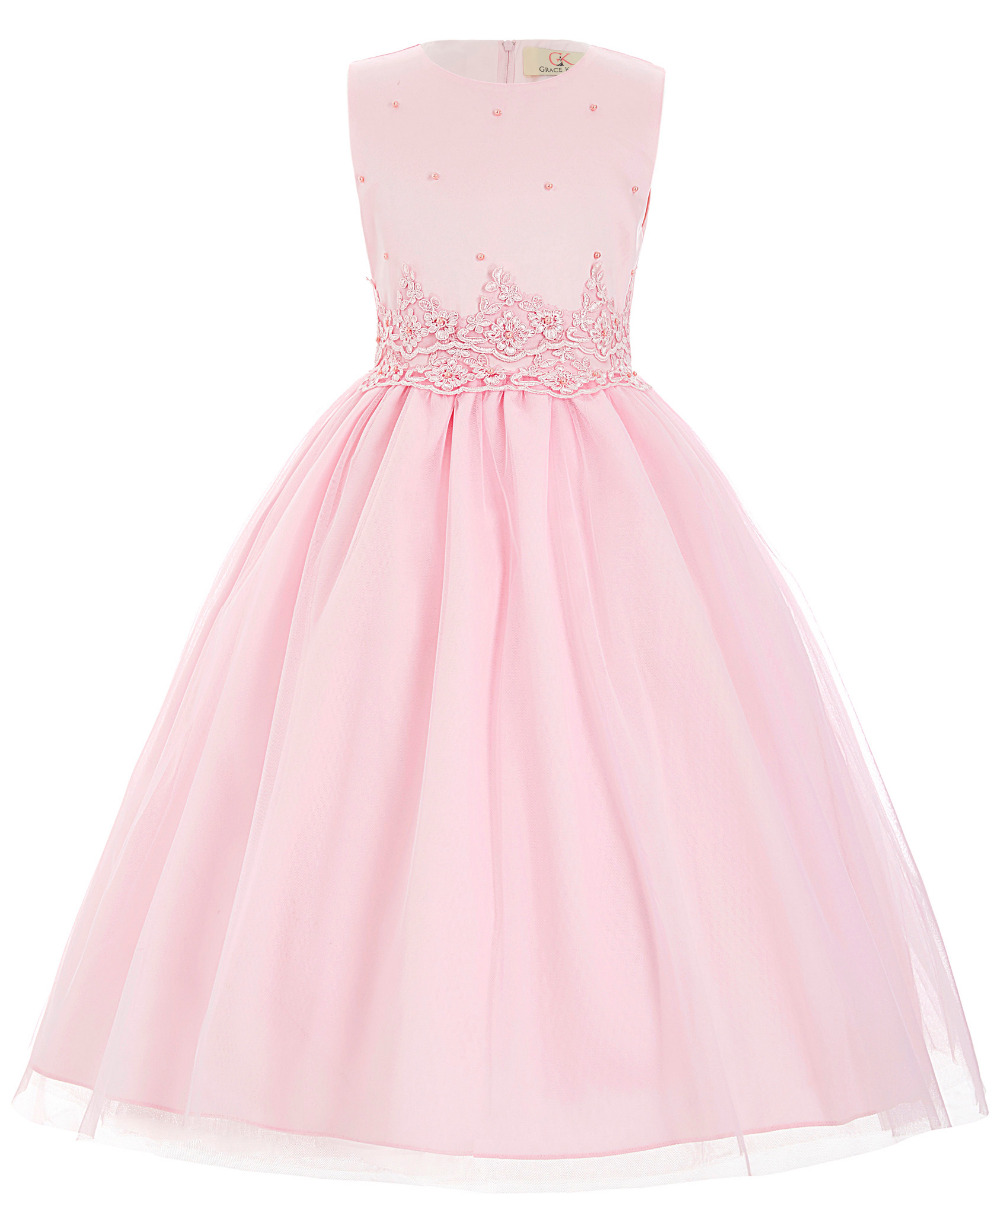 Cheap White Pink Flower Girl Dresses 2016 Elegant Wedding Birthday Party Satin First Communion Dresses for Girls Pageant Dresses(China (Mainland))